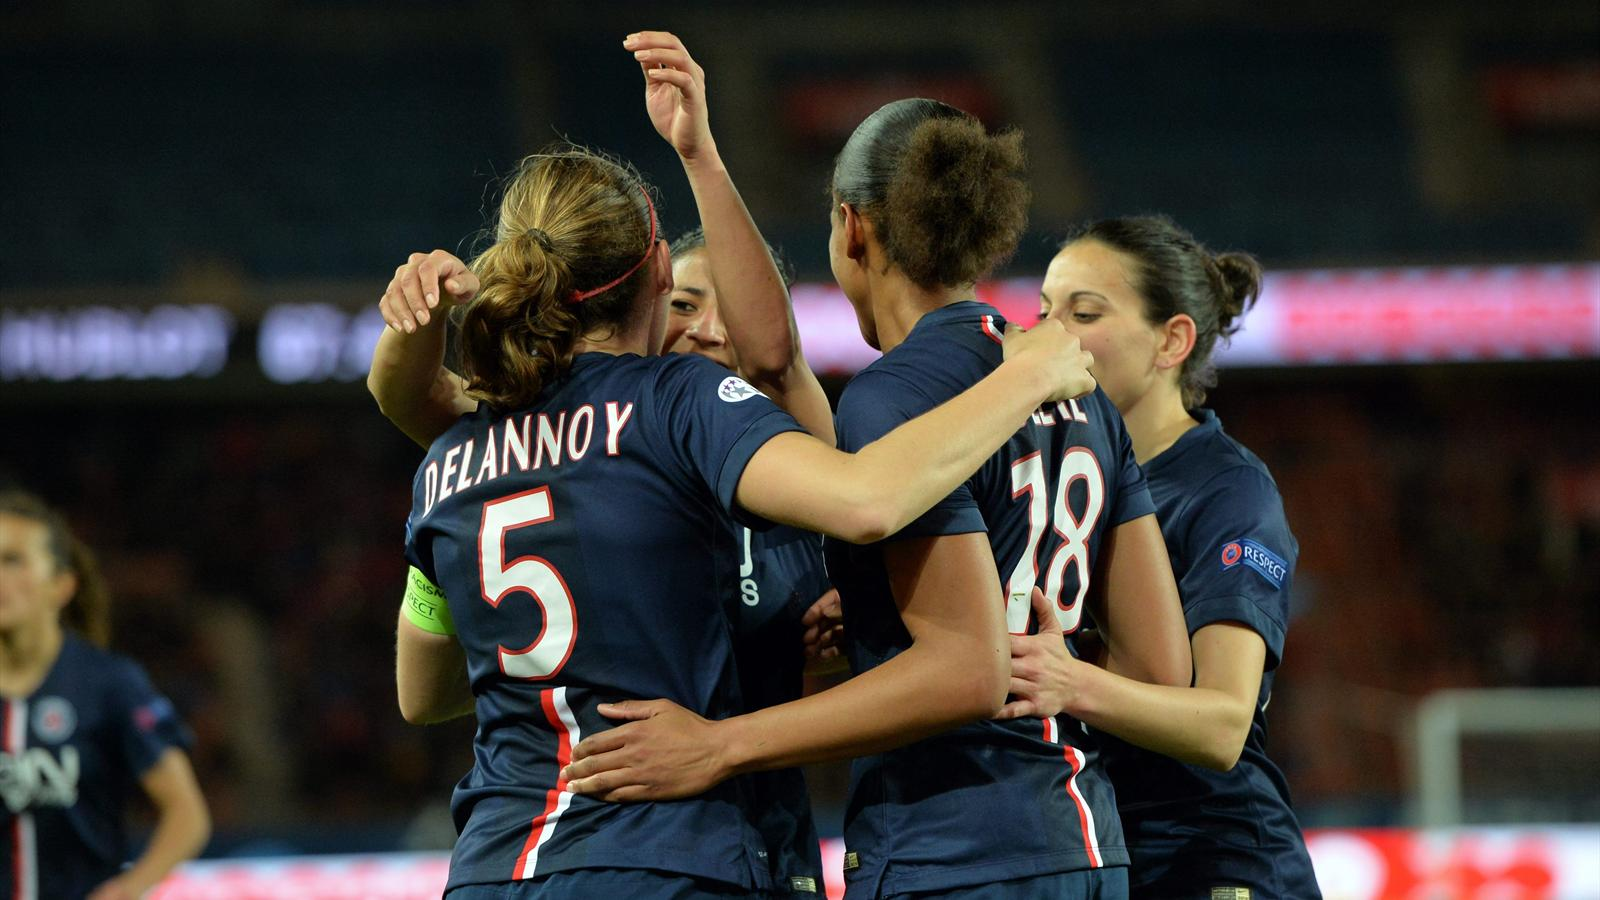 Finale C1 (Femmes) PSG - Francfort en direct live streaming